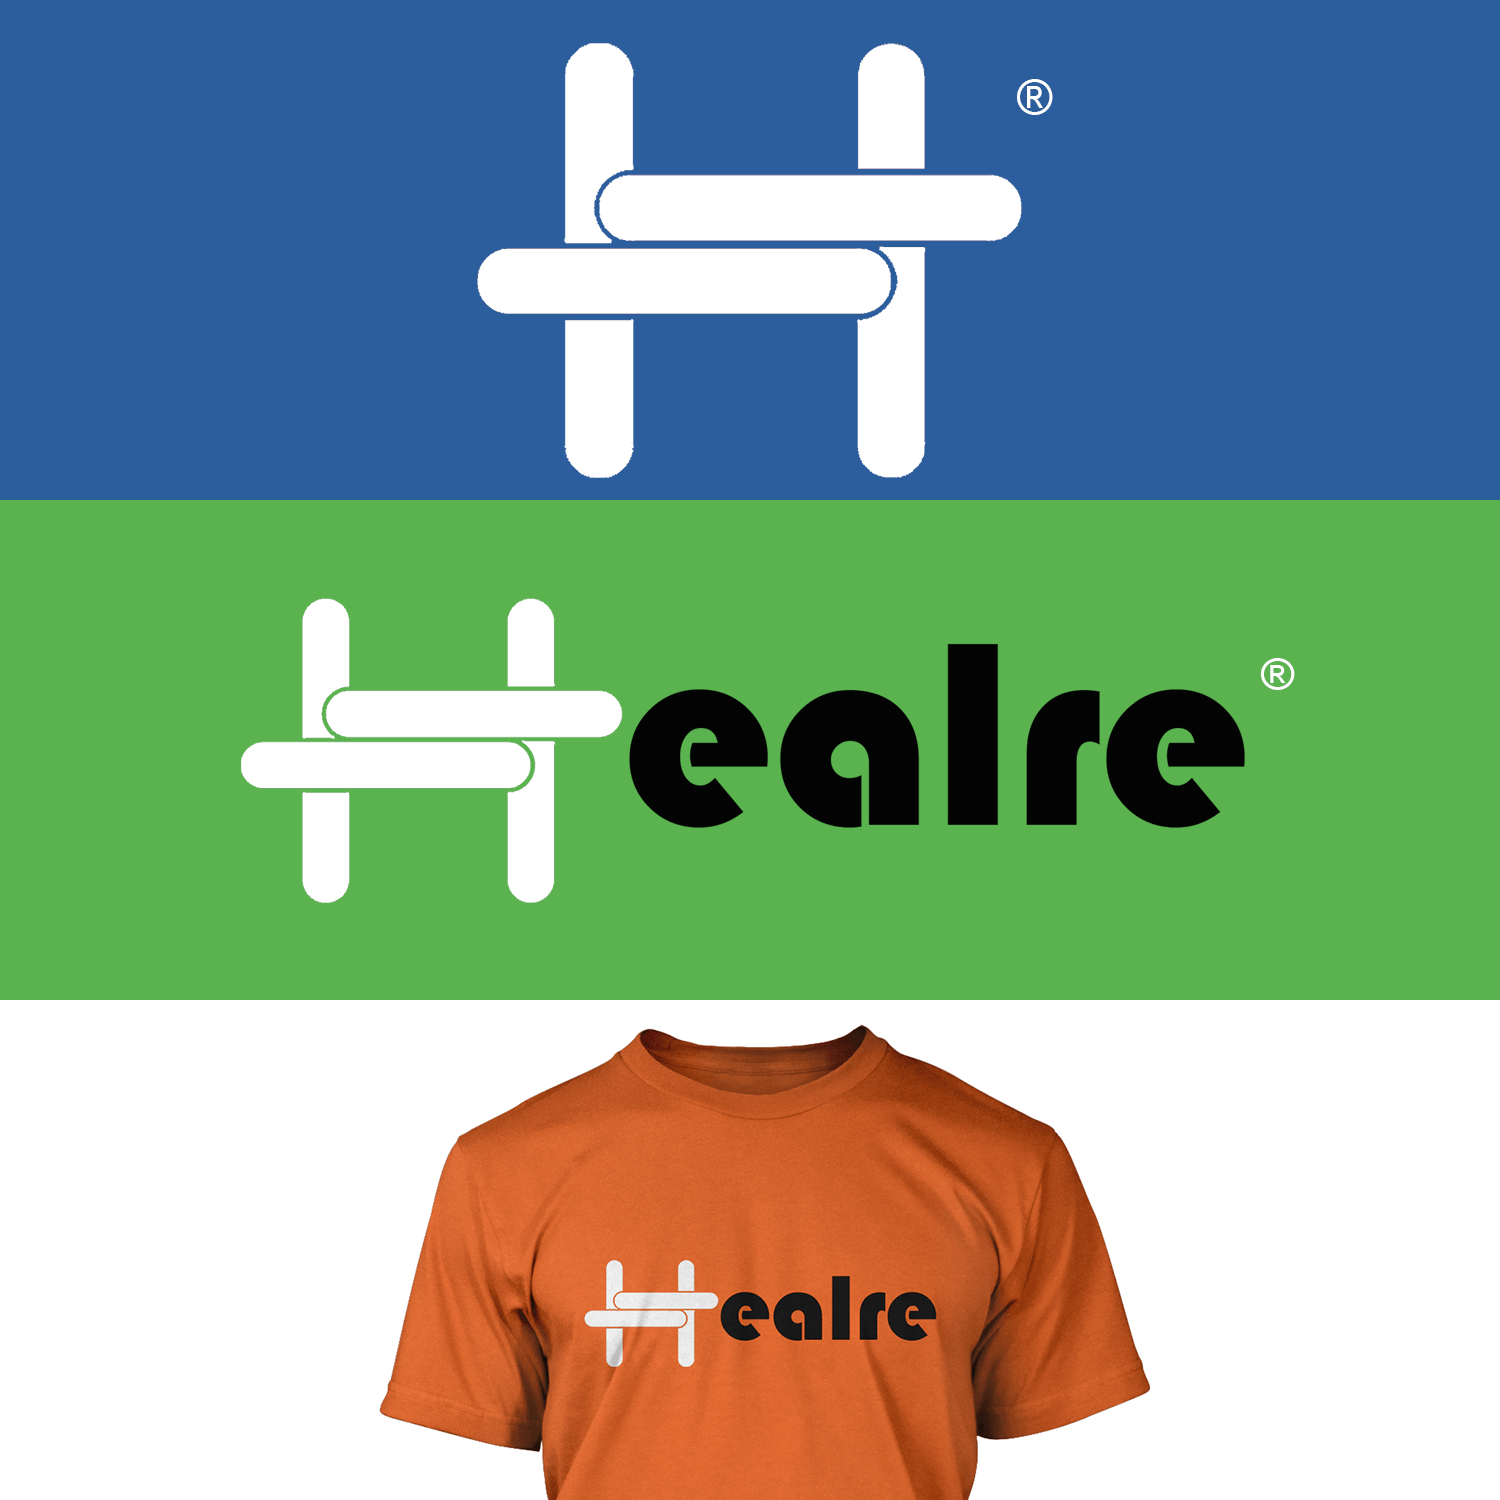 This piece is a logo design for Healre®, the health and fitness company. I tried close to 100 designs before I shifted to simplicity and came up with this one.